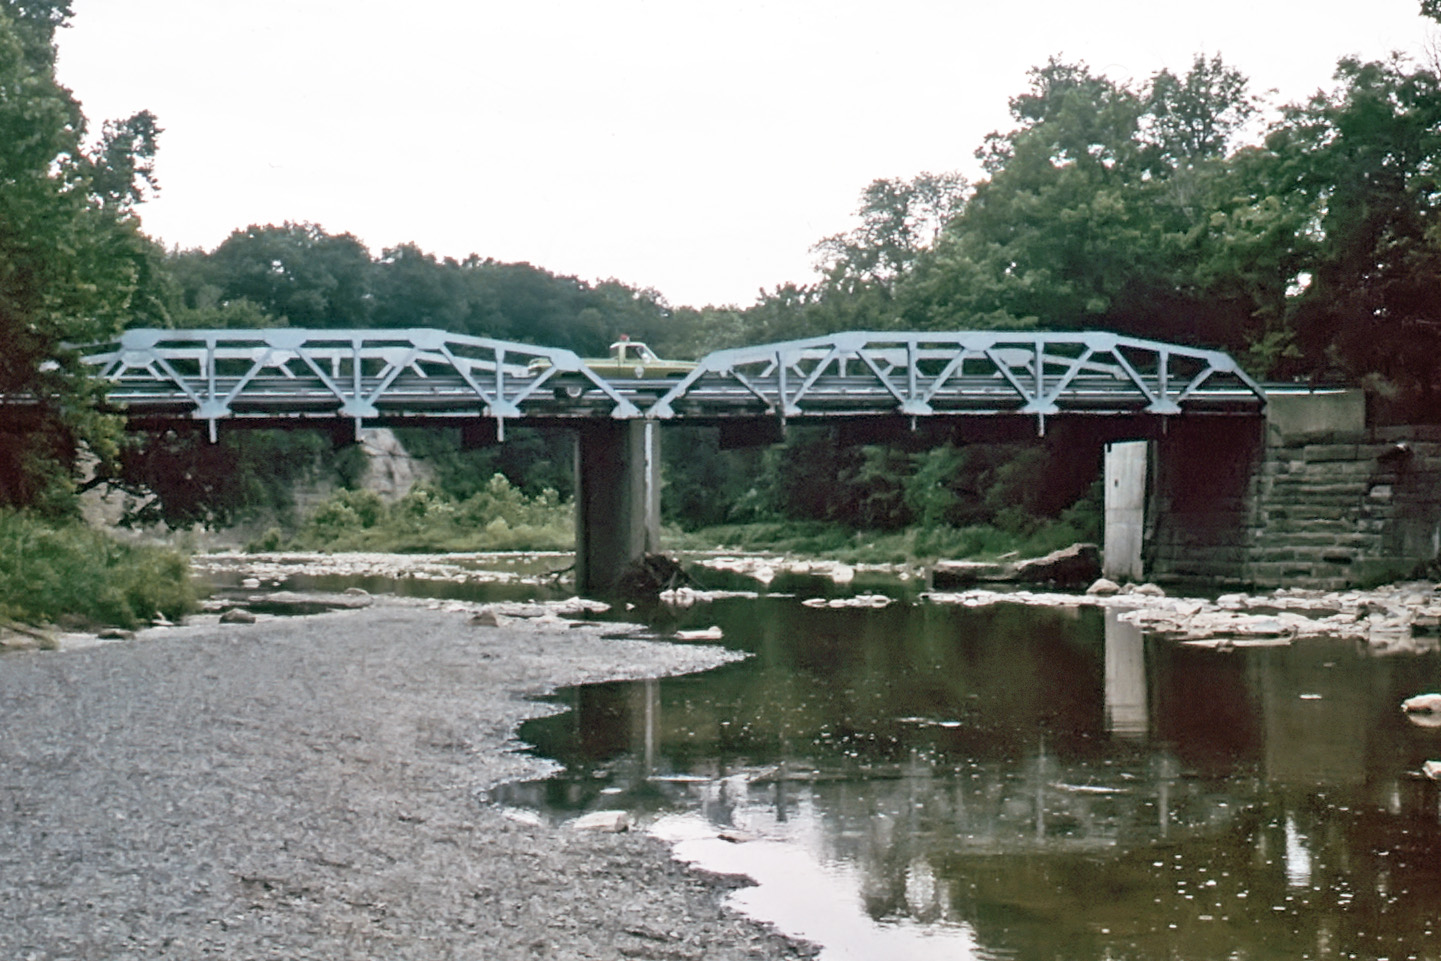 Ohio erie county vermilion - Bridge Over The Vermilion River Photo 1989 By Kenneth Mays